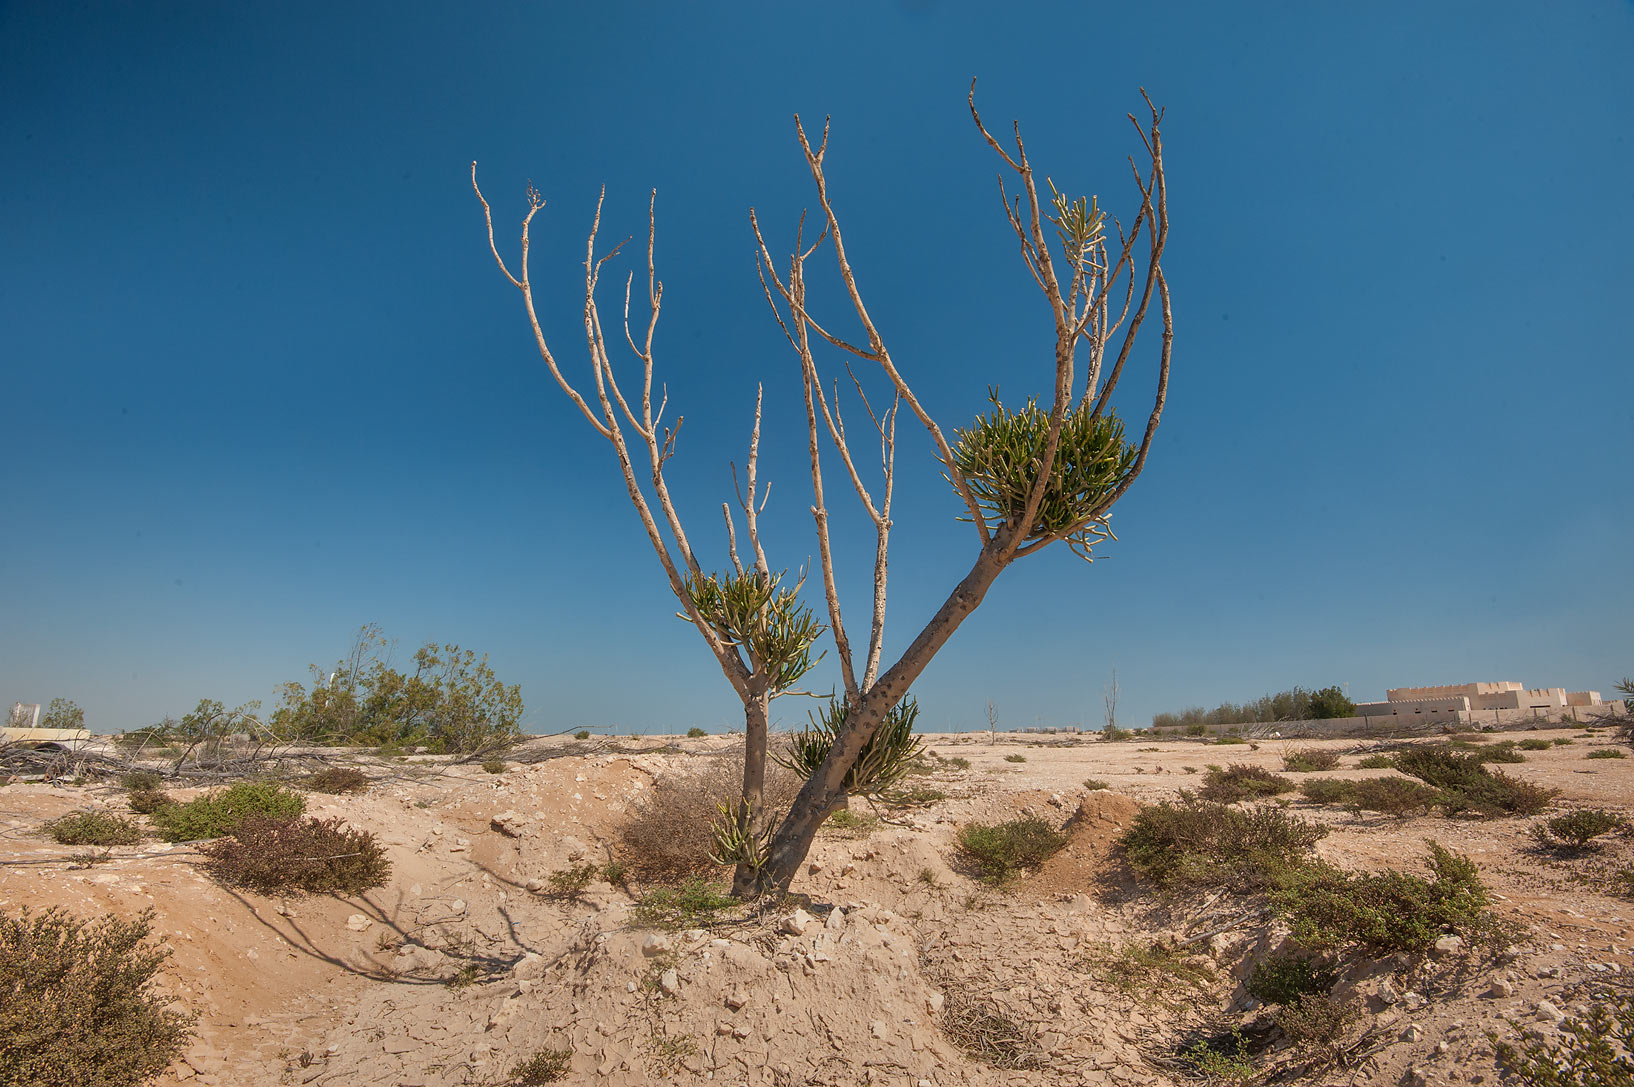 Pencil tree (Euphorbia tirucalli) in abandoned...Ras Laffan farms. North-eastern Qatar